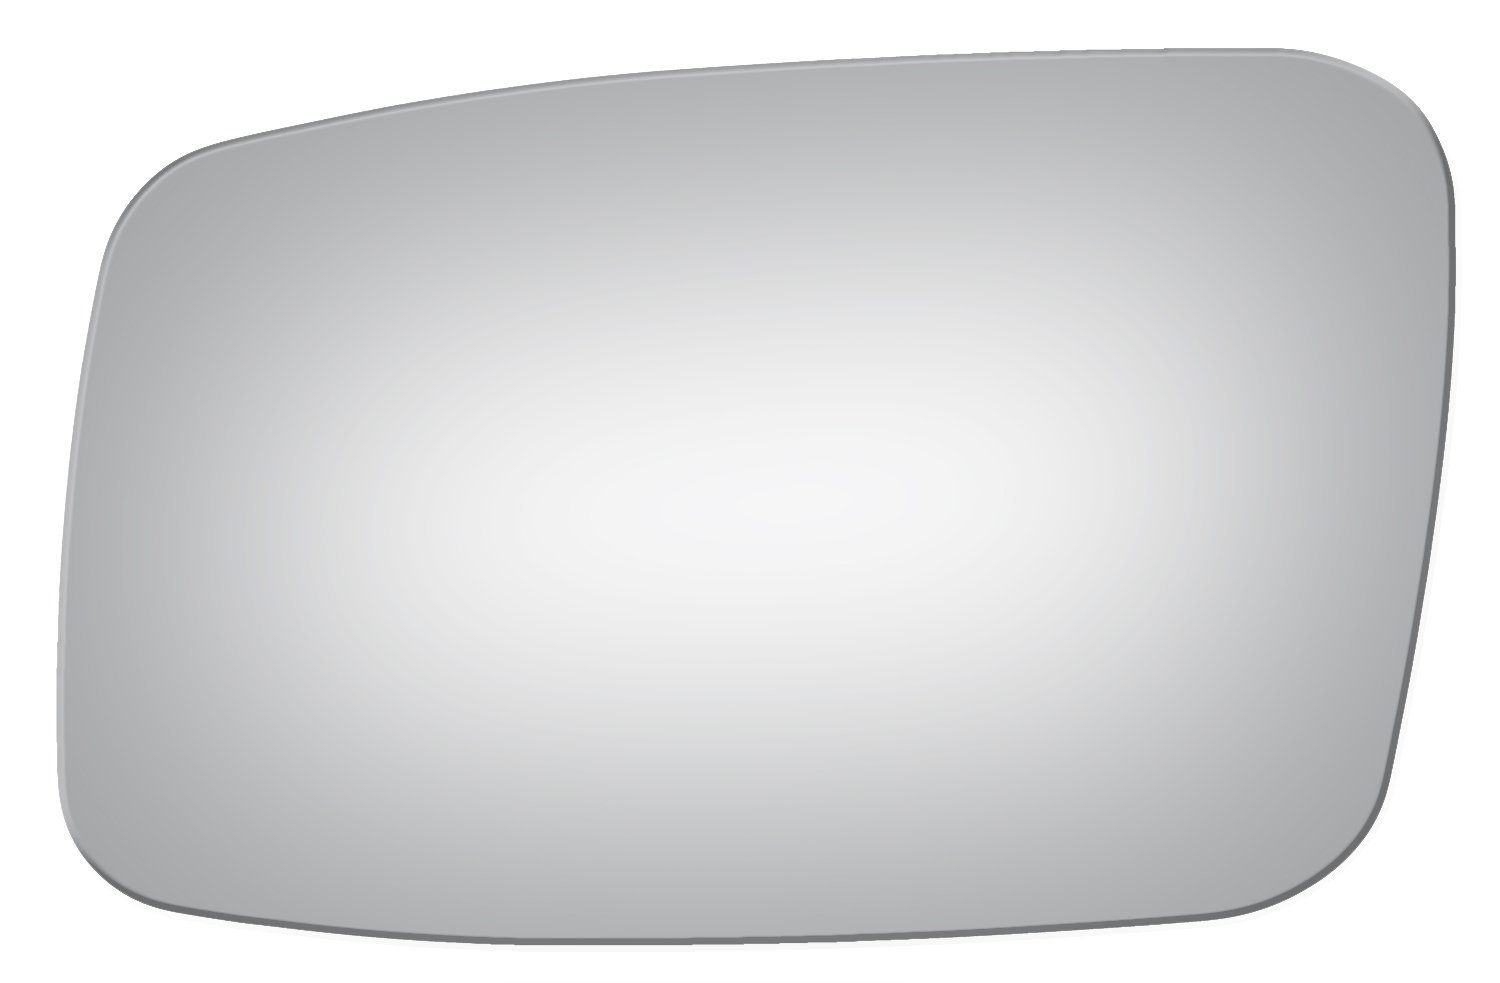 Burco 2851 Flat Driver Side Replacement Mirror Glass for Volvo 850, C70, S40, S70, V40, V70 (1993, 1994, 1995, 1996, 1997, 1998, 1999, 2000, 2001, 2002, 2003, 2004)